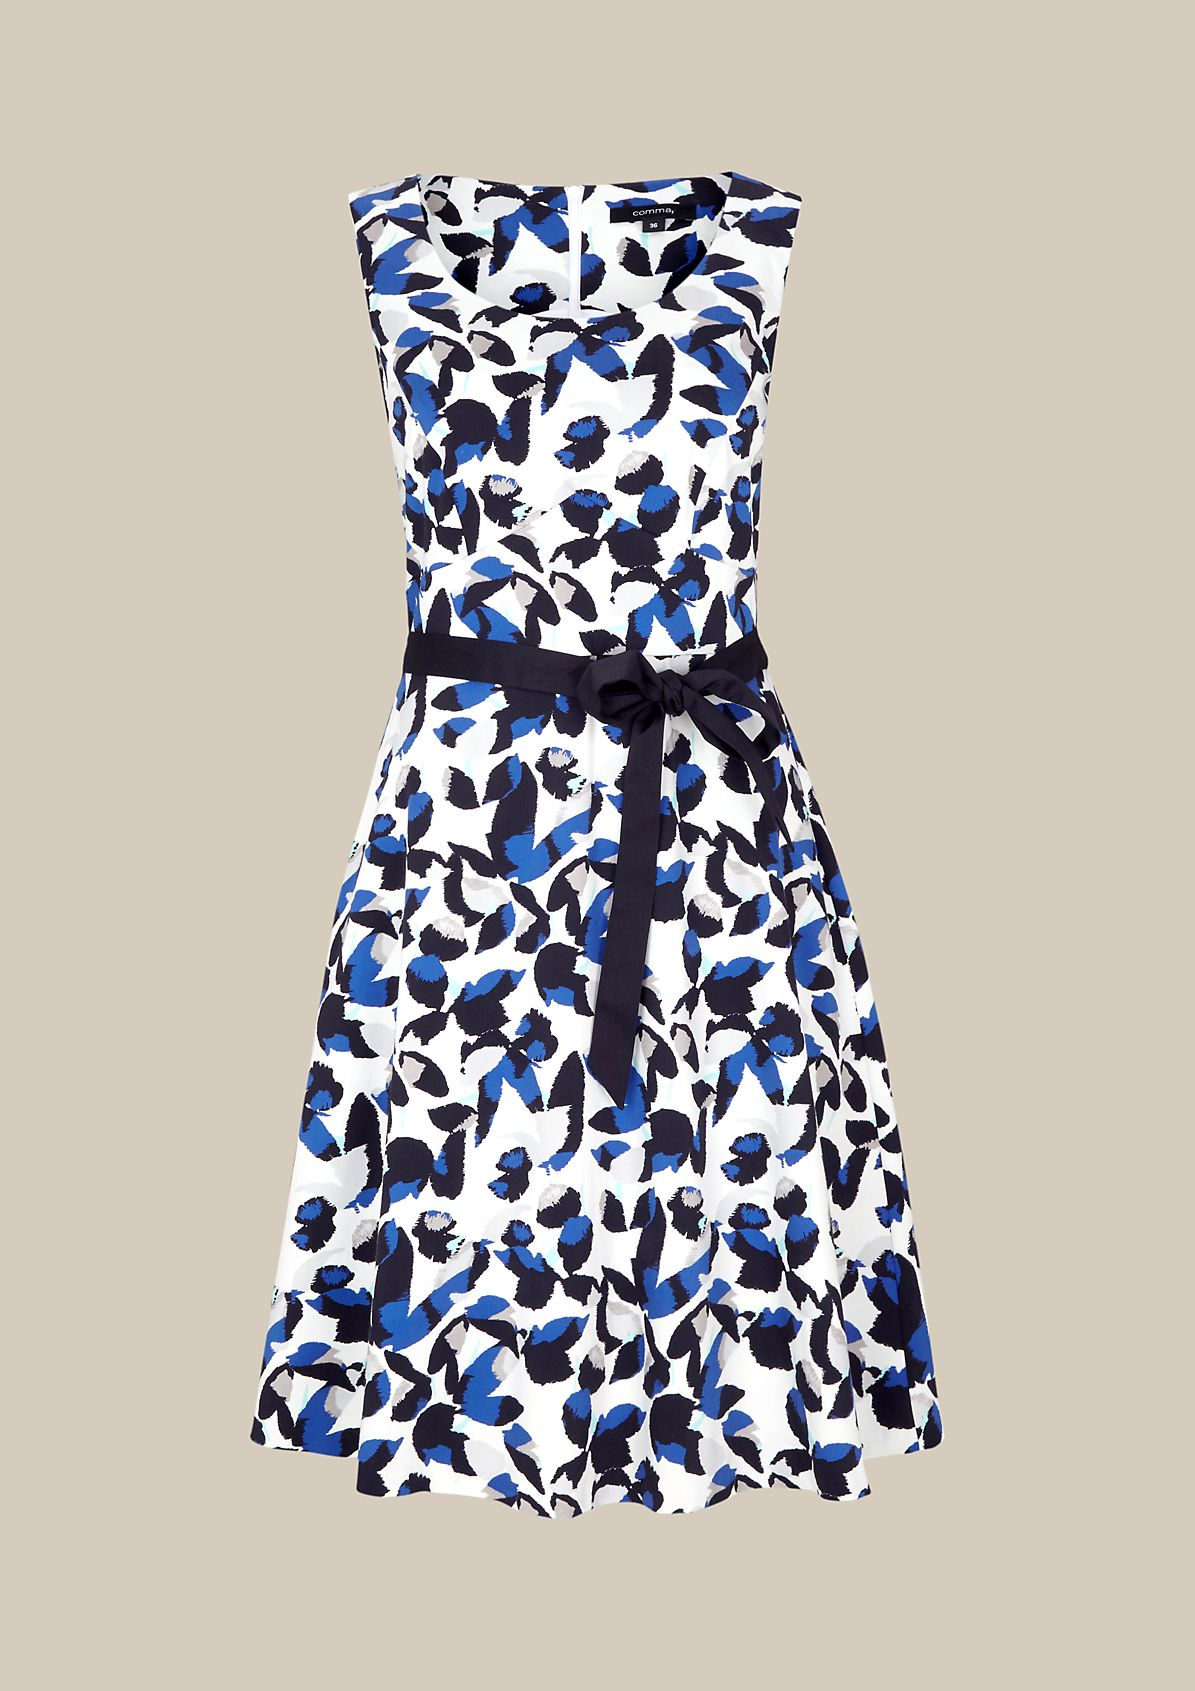 Feminine business dress with a decorative pattern from s.Oliver